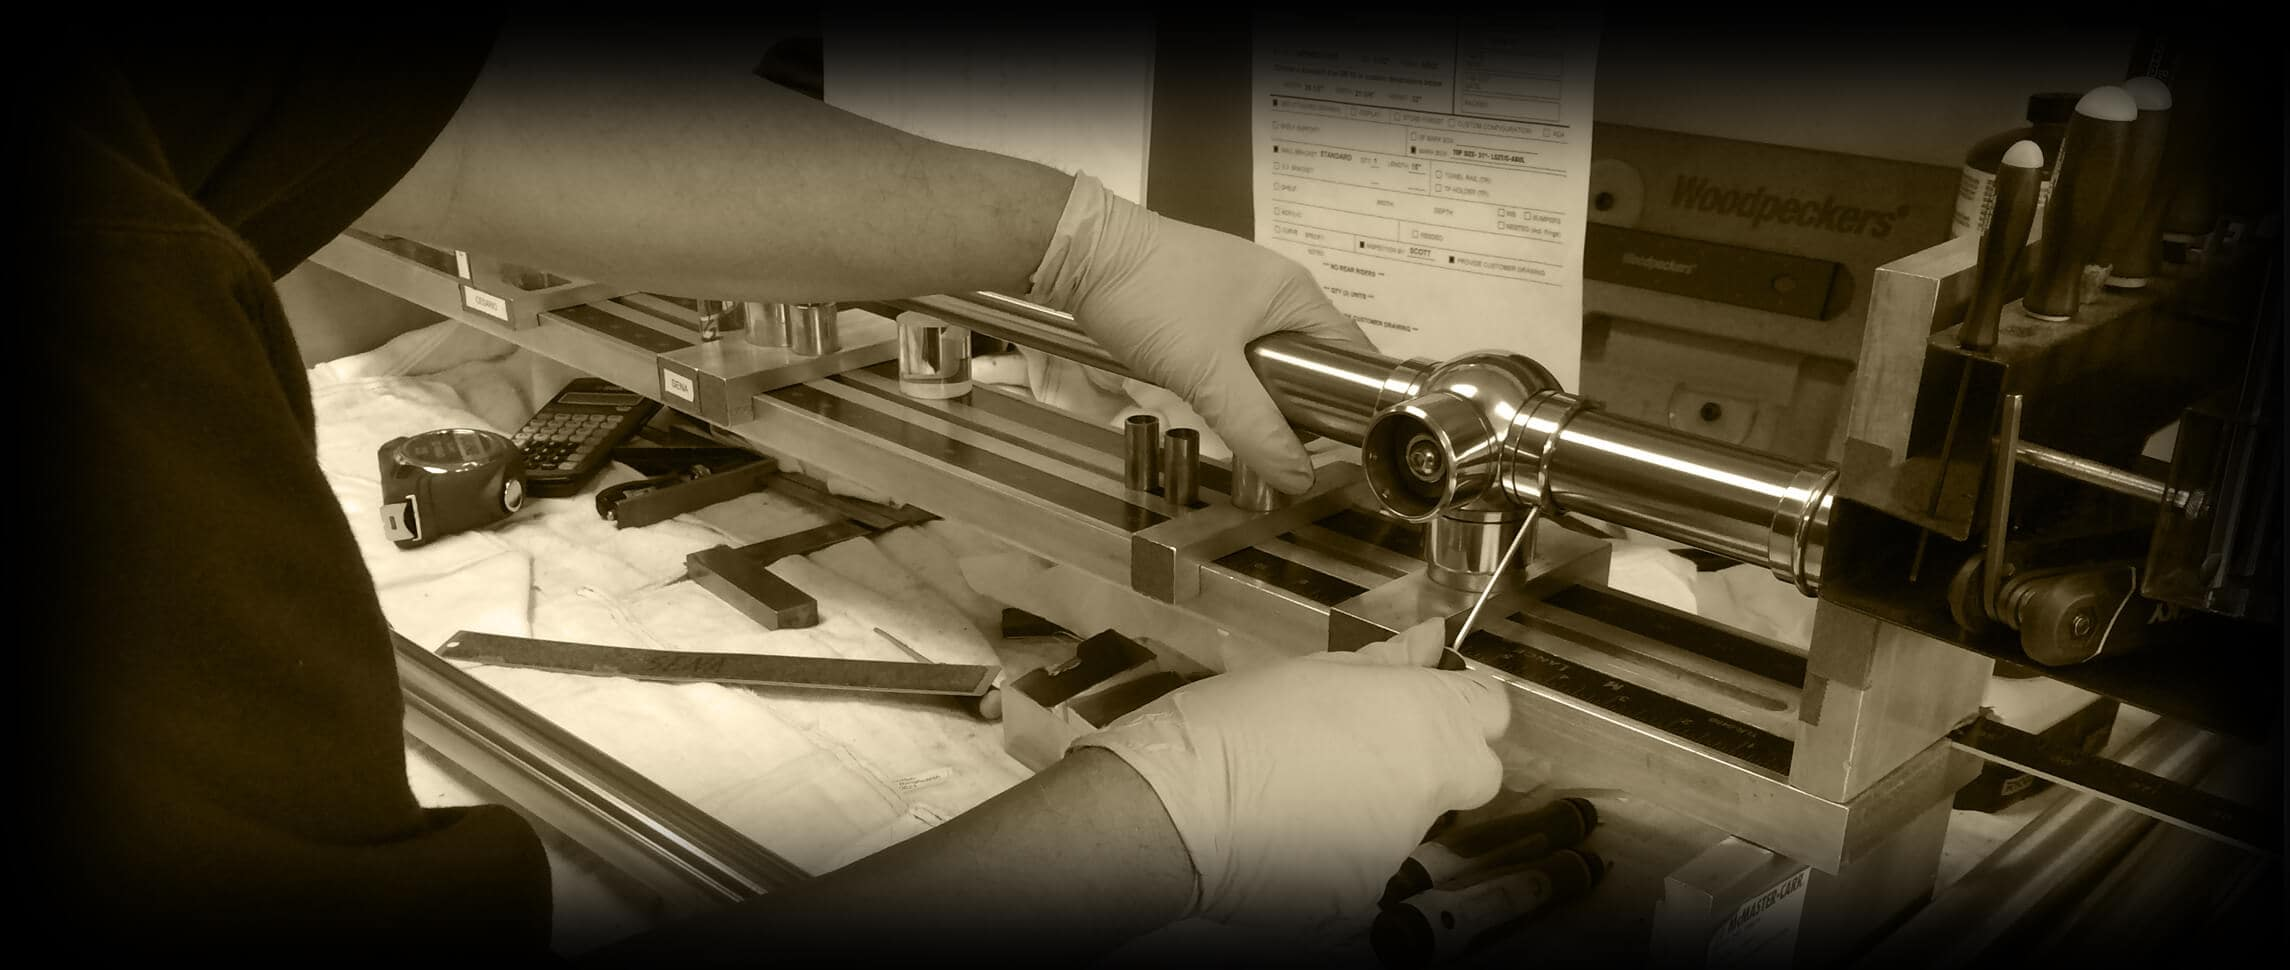 Chrome sink legs being assembled in a precision alignment jig